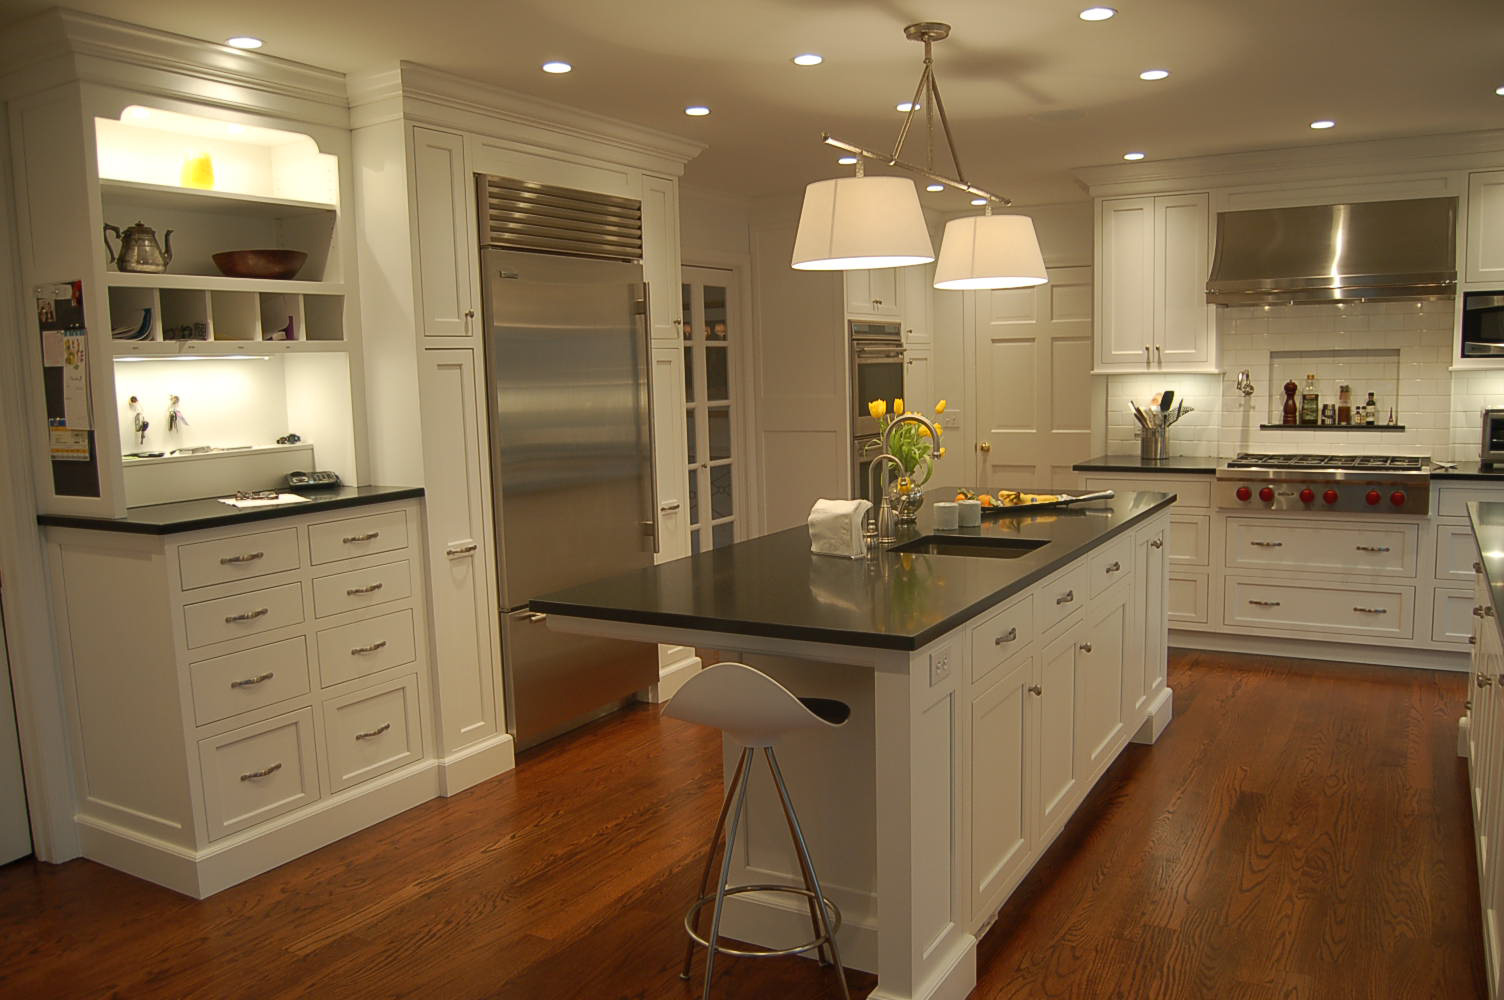 kitchen remodeling cabinets plumbing waltham ma | dlm remodeling